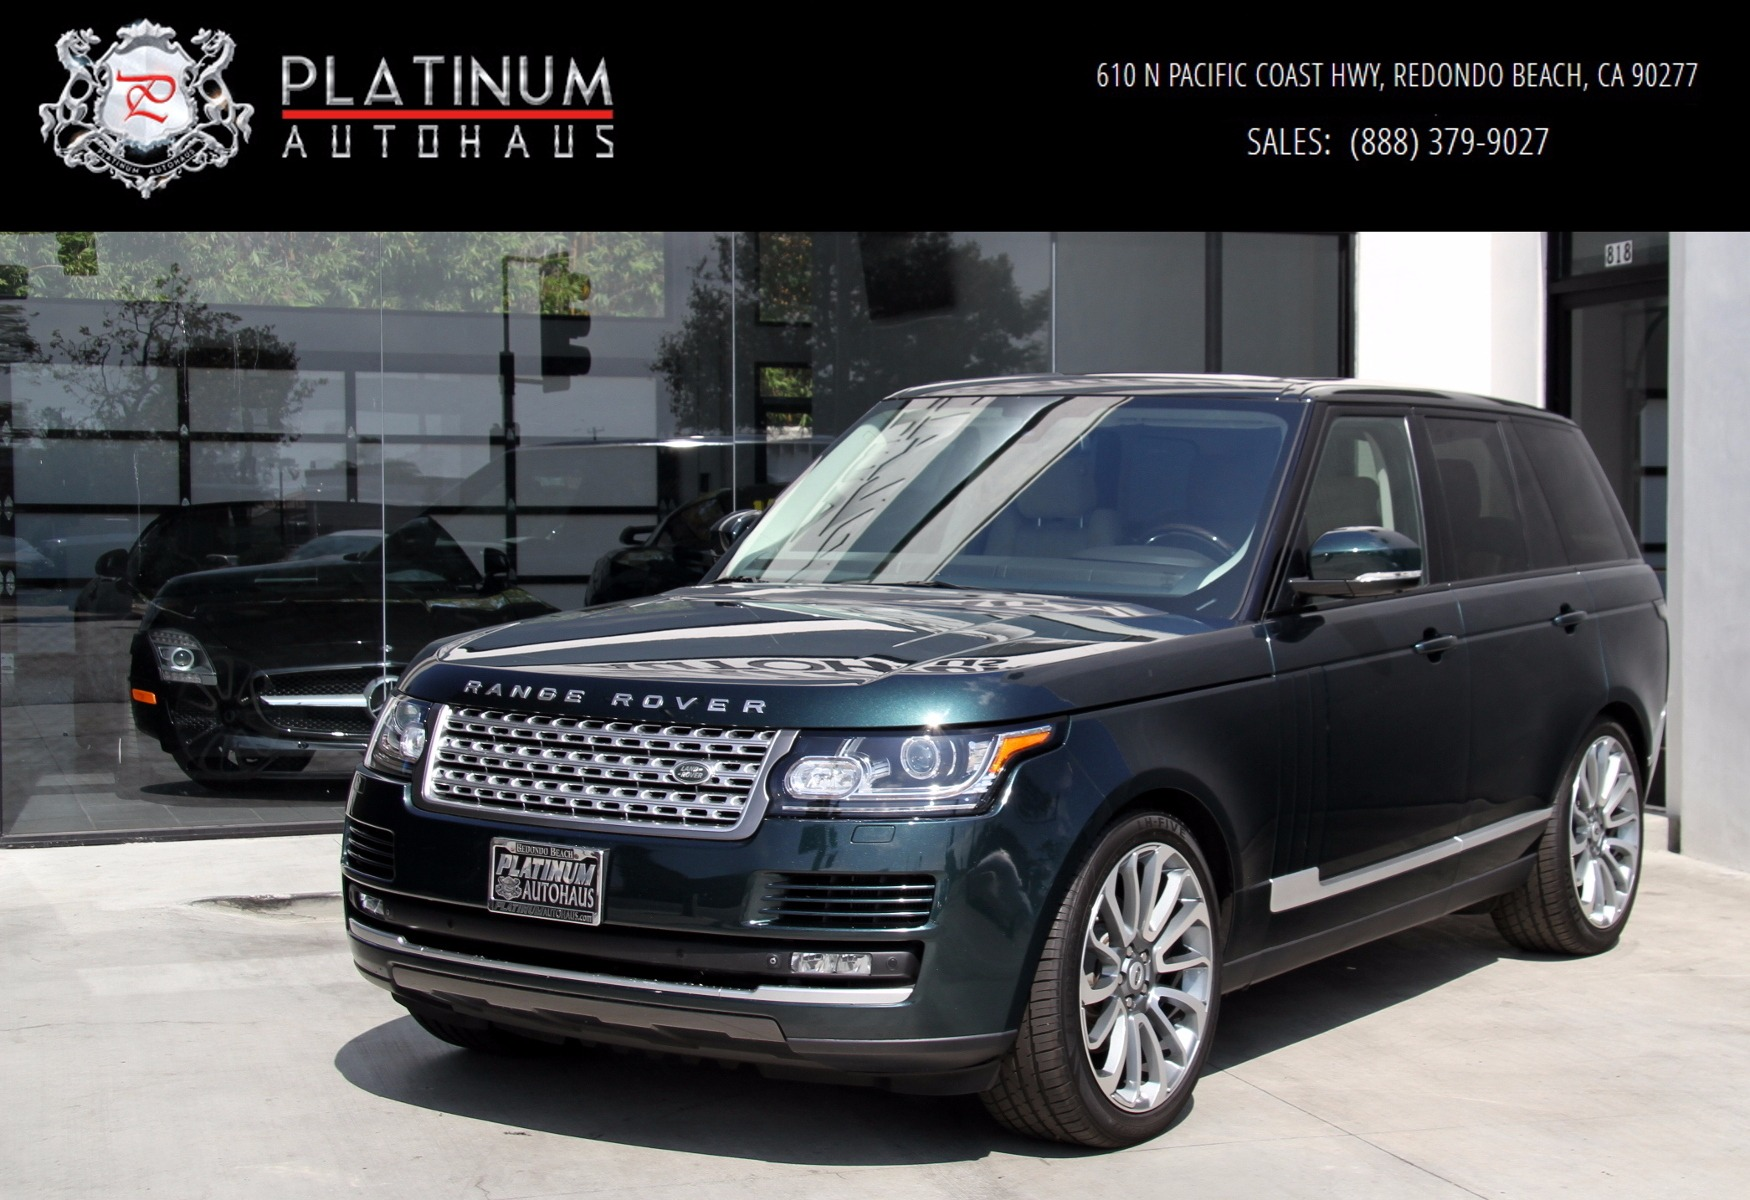 2014 land rover range rover hse stock 5810 for sale near redondo beach ca ca land rover dealer - Land rover garage near me ...